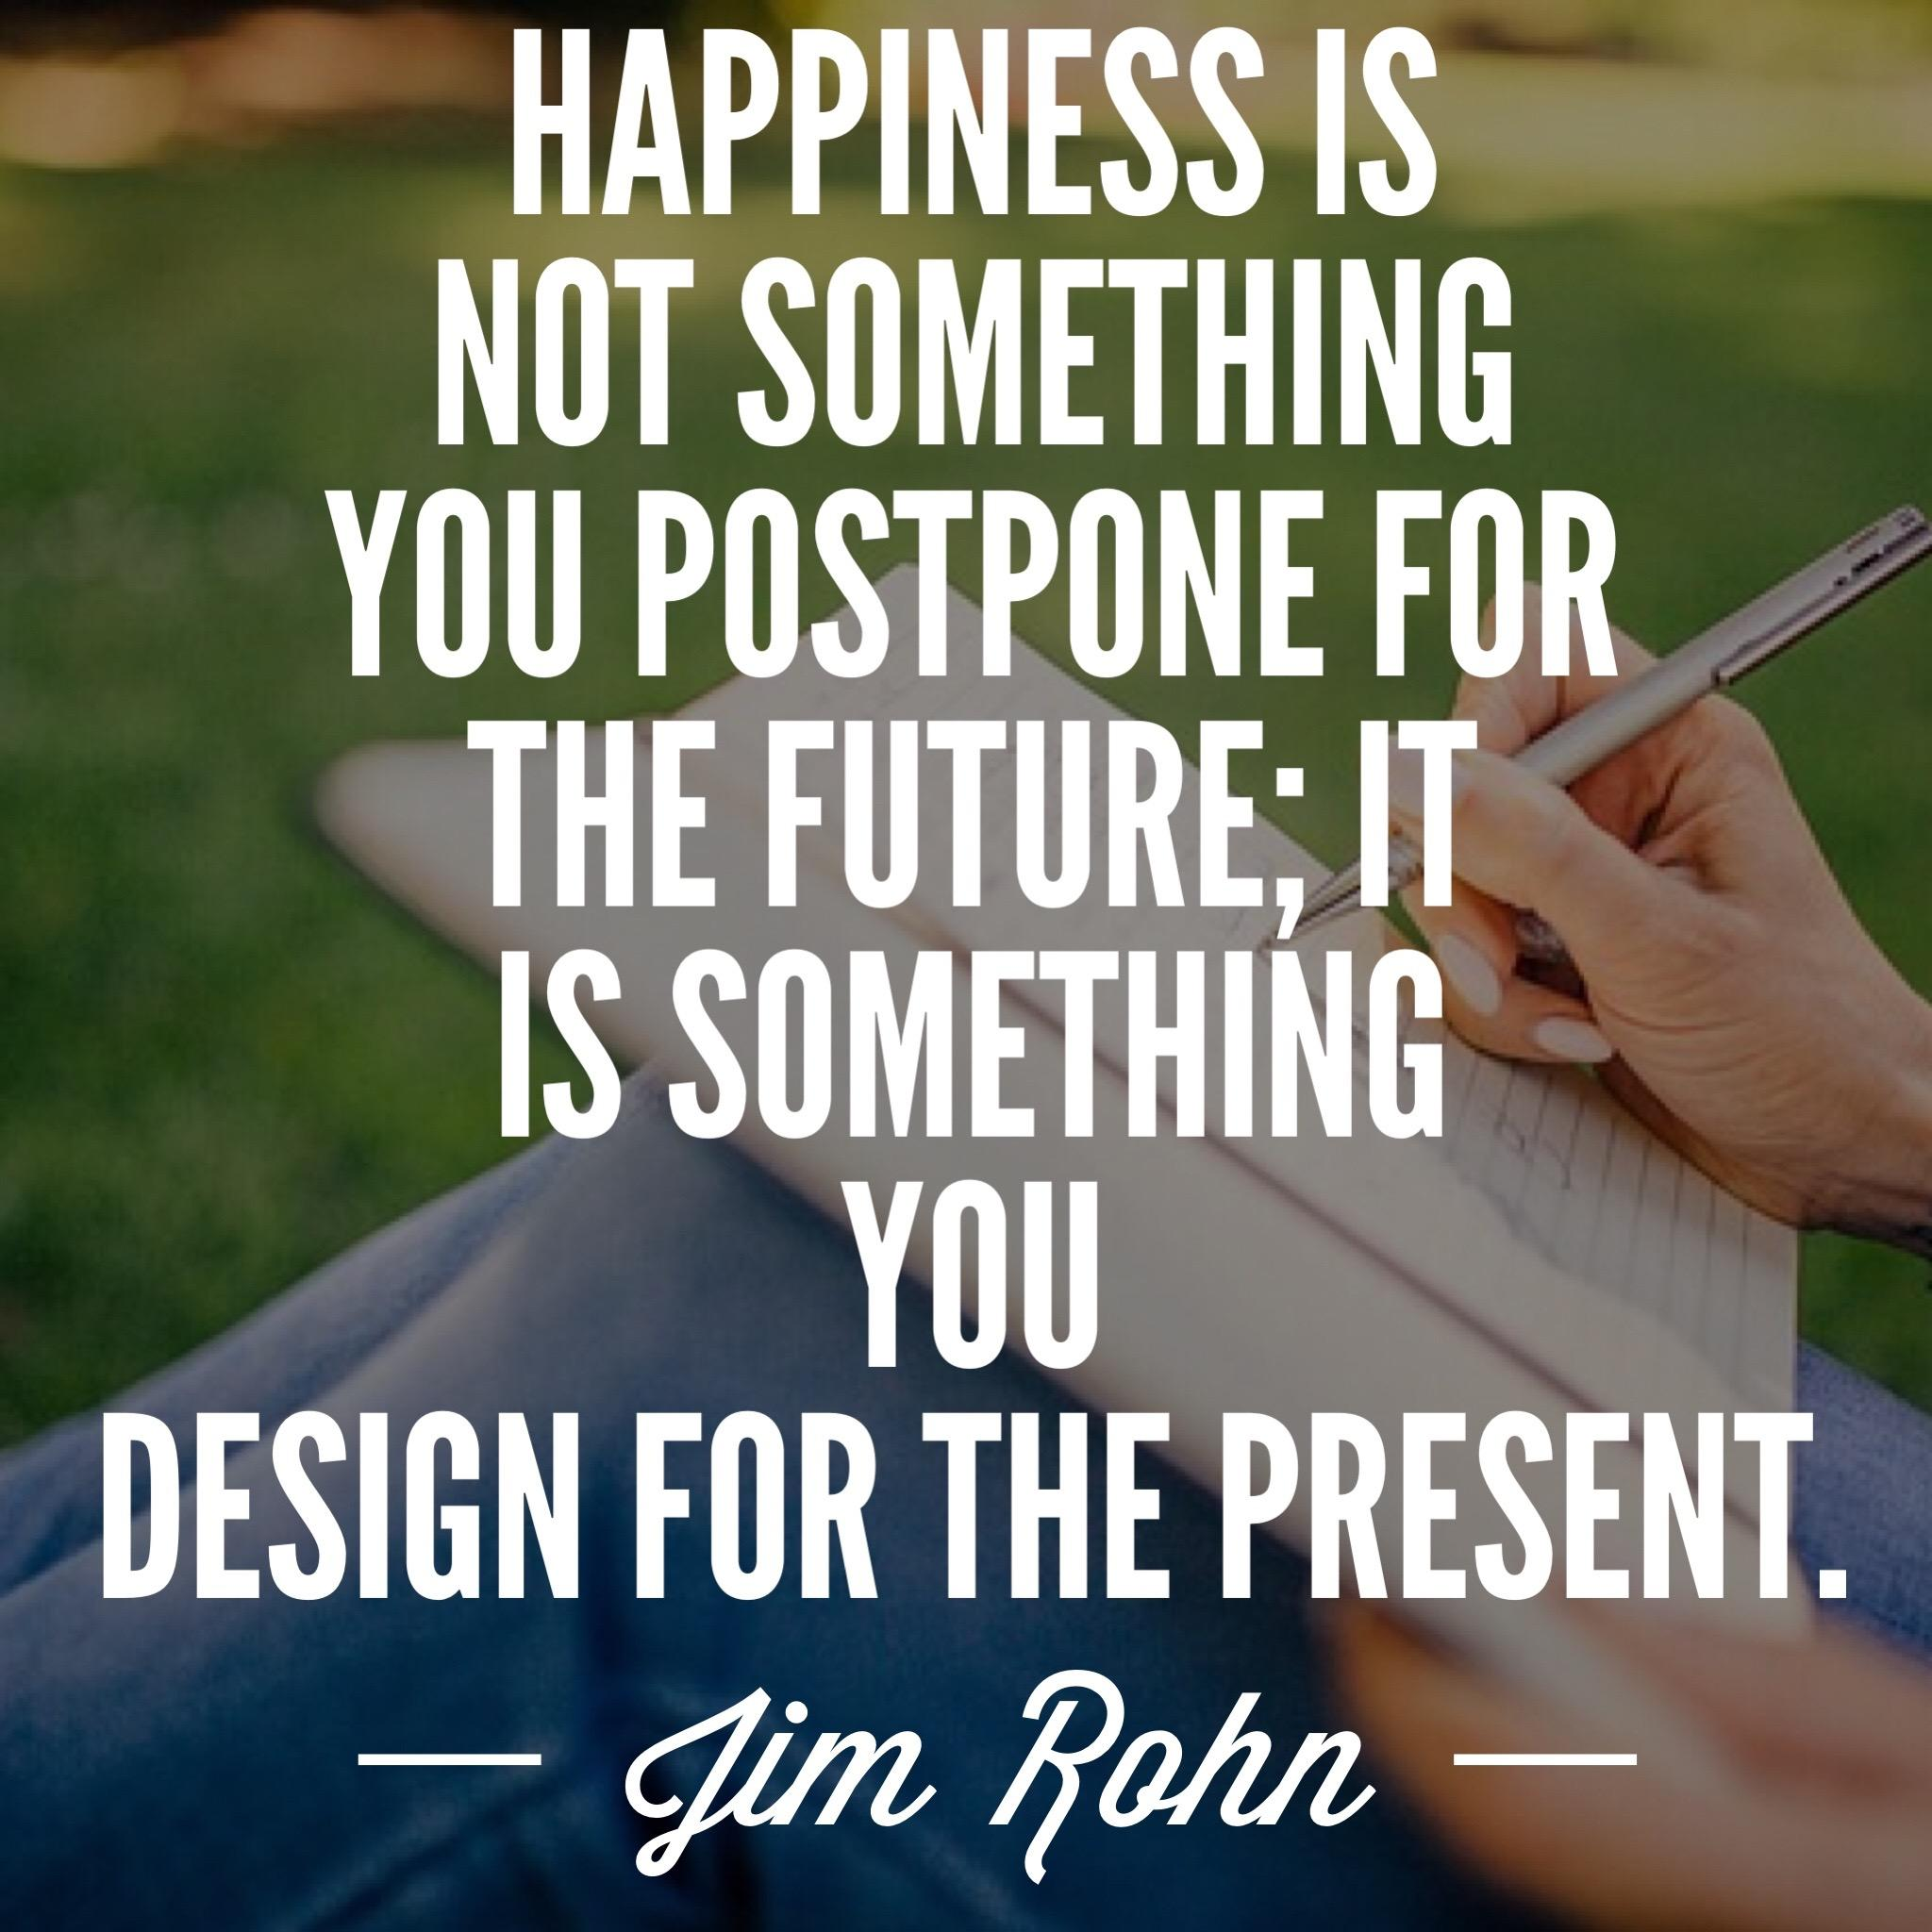 """Happiness is not something you postpone for the future; It is something you design for the present."" – Jim Rohn [2048 x 2048]"